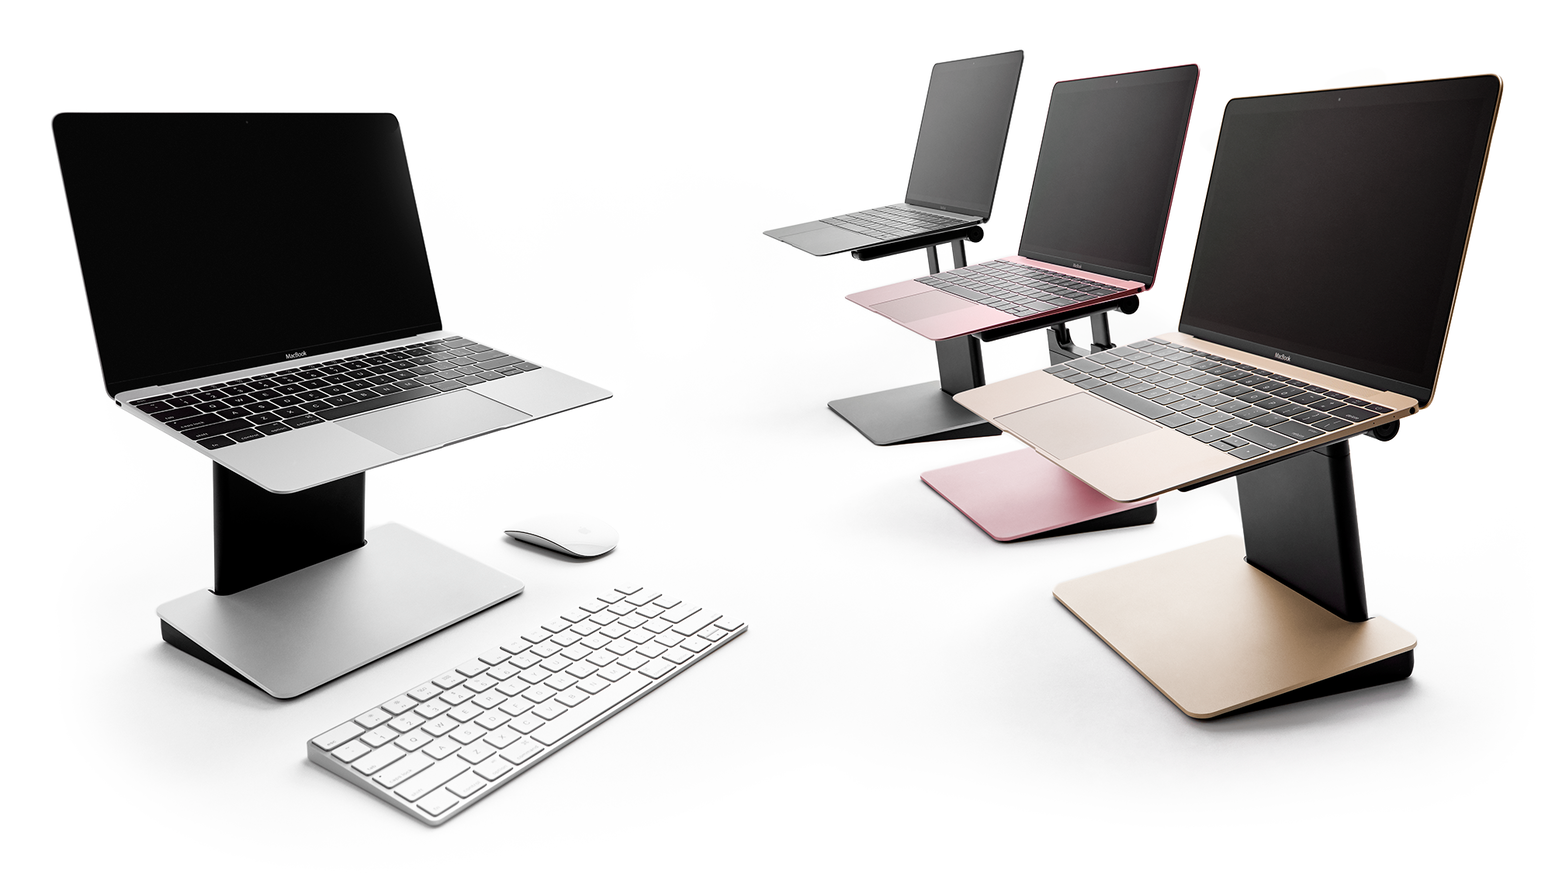 Stop hunching. Get your posture back. Portable, compact, height-adjustable & beautifully designed, this laptop stand is like no other.